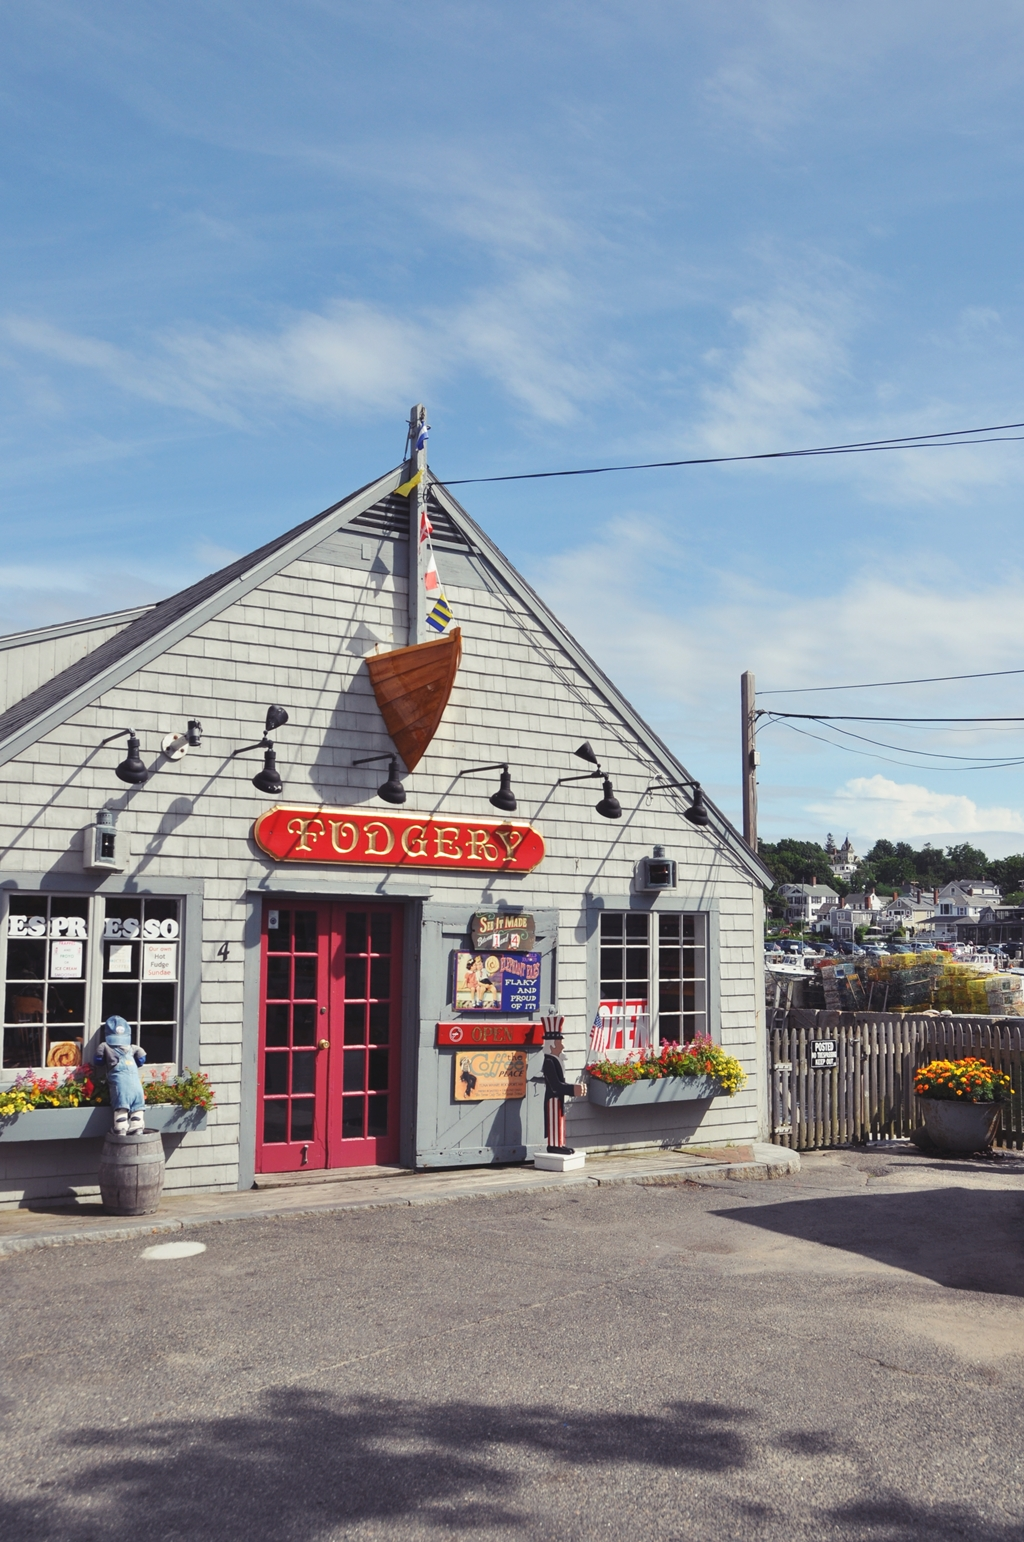 Travel | Unser Neuengland Roadtrip - die Fudgery in Rockport Massachusetts | luziapimpinella.com